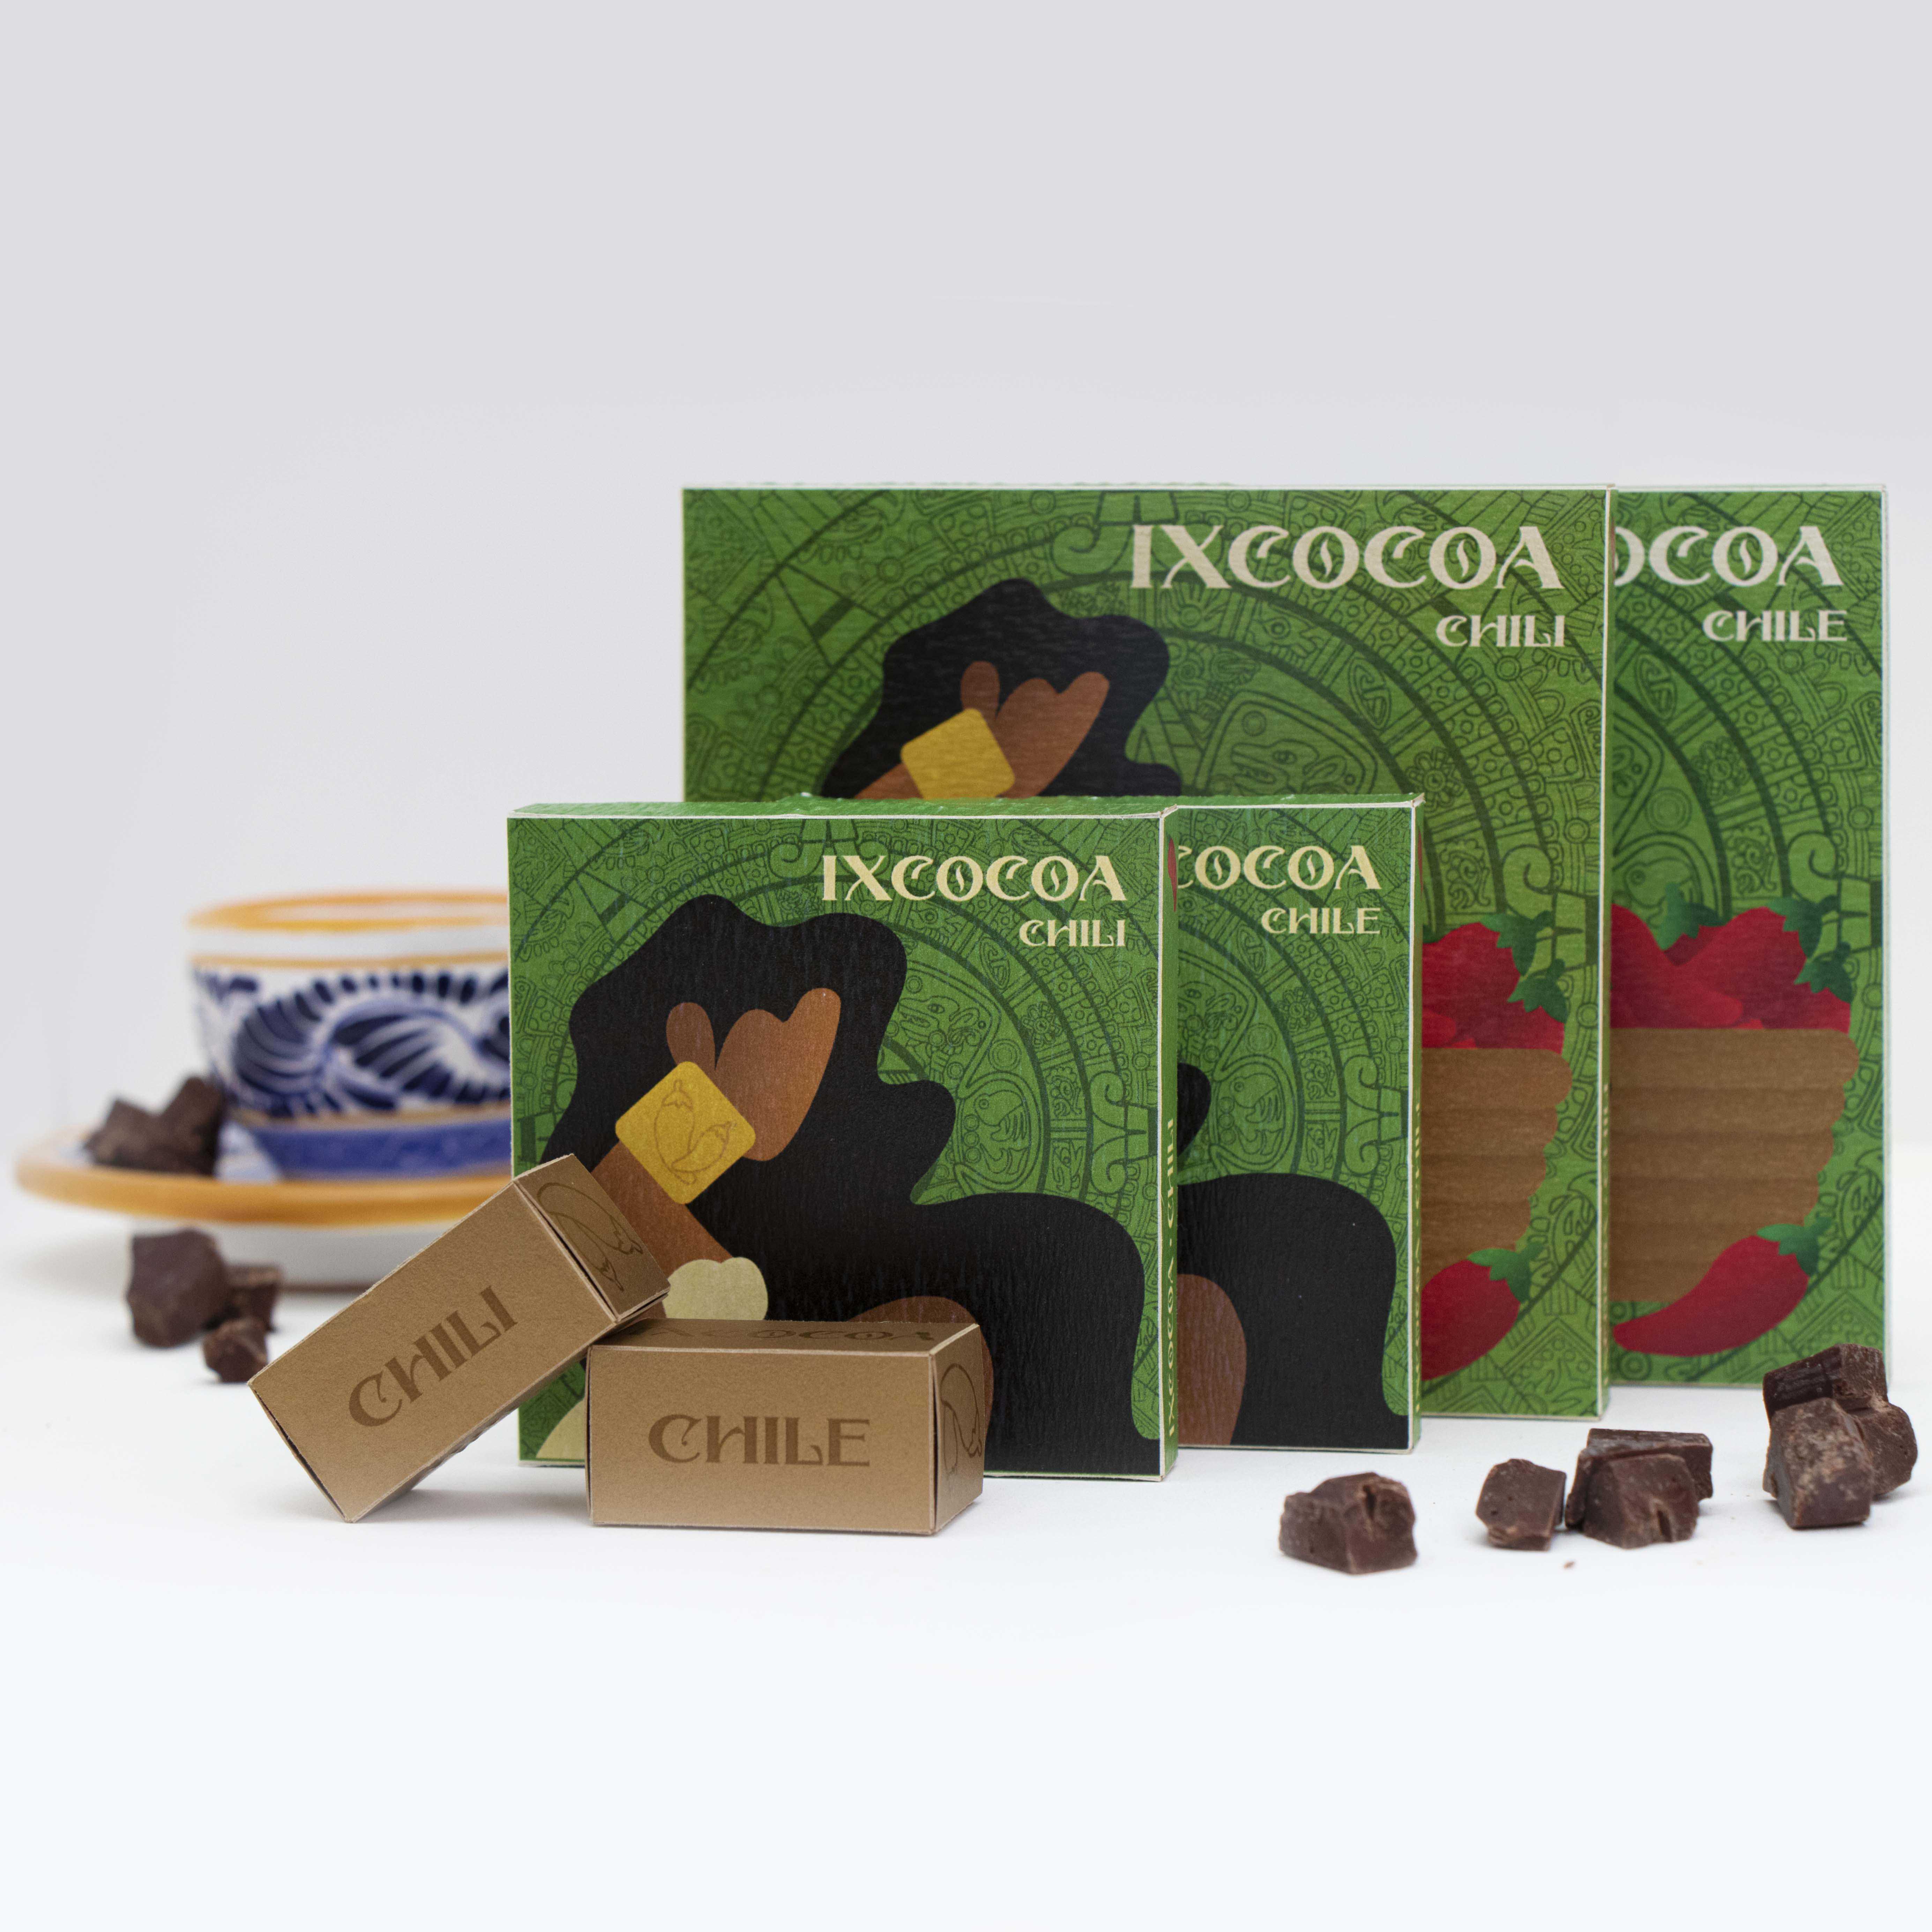 The box that contains the chocolate bars looks like a pyramid because of the influence that the Mayan architecture has on the Ixcocoa brand. Additionally, its aesthetic is completely white with all the visuals and necessary information engraved on the box. The engraving is a reference to the archaeological details and  intricate carving found in Mayan sculptures from their time.